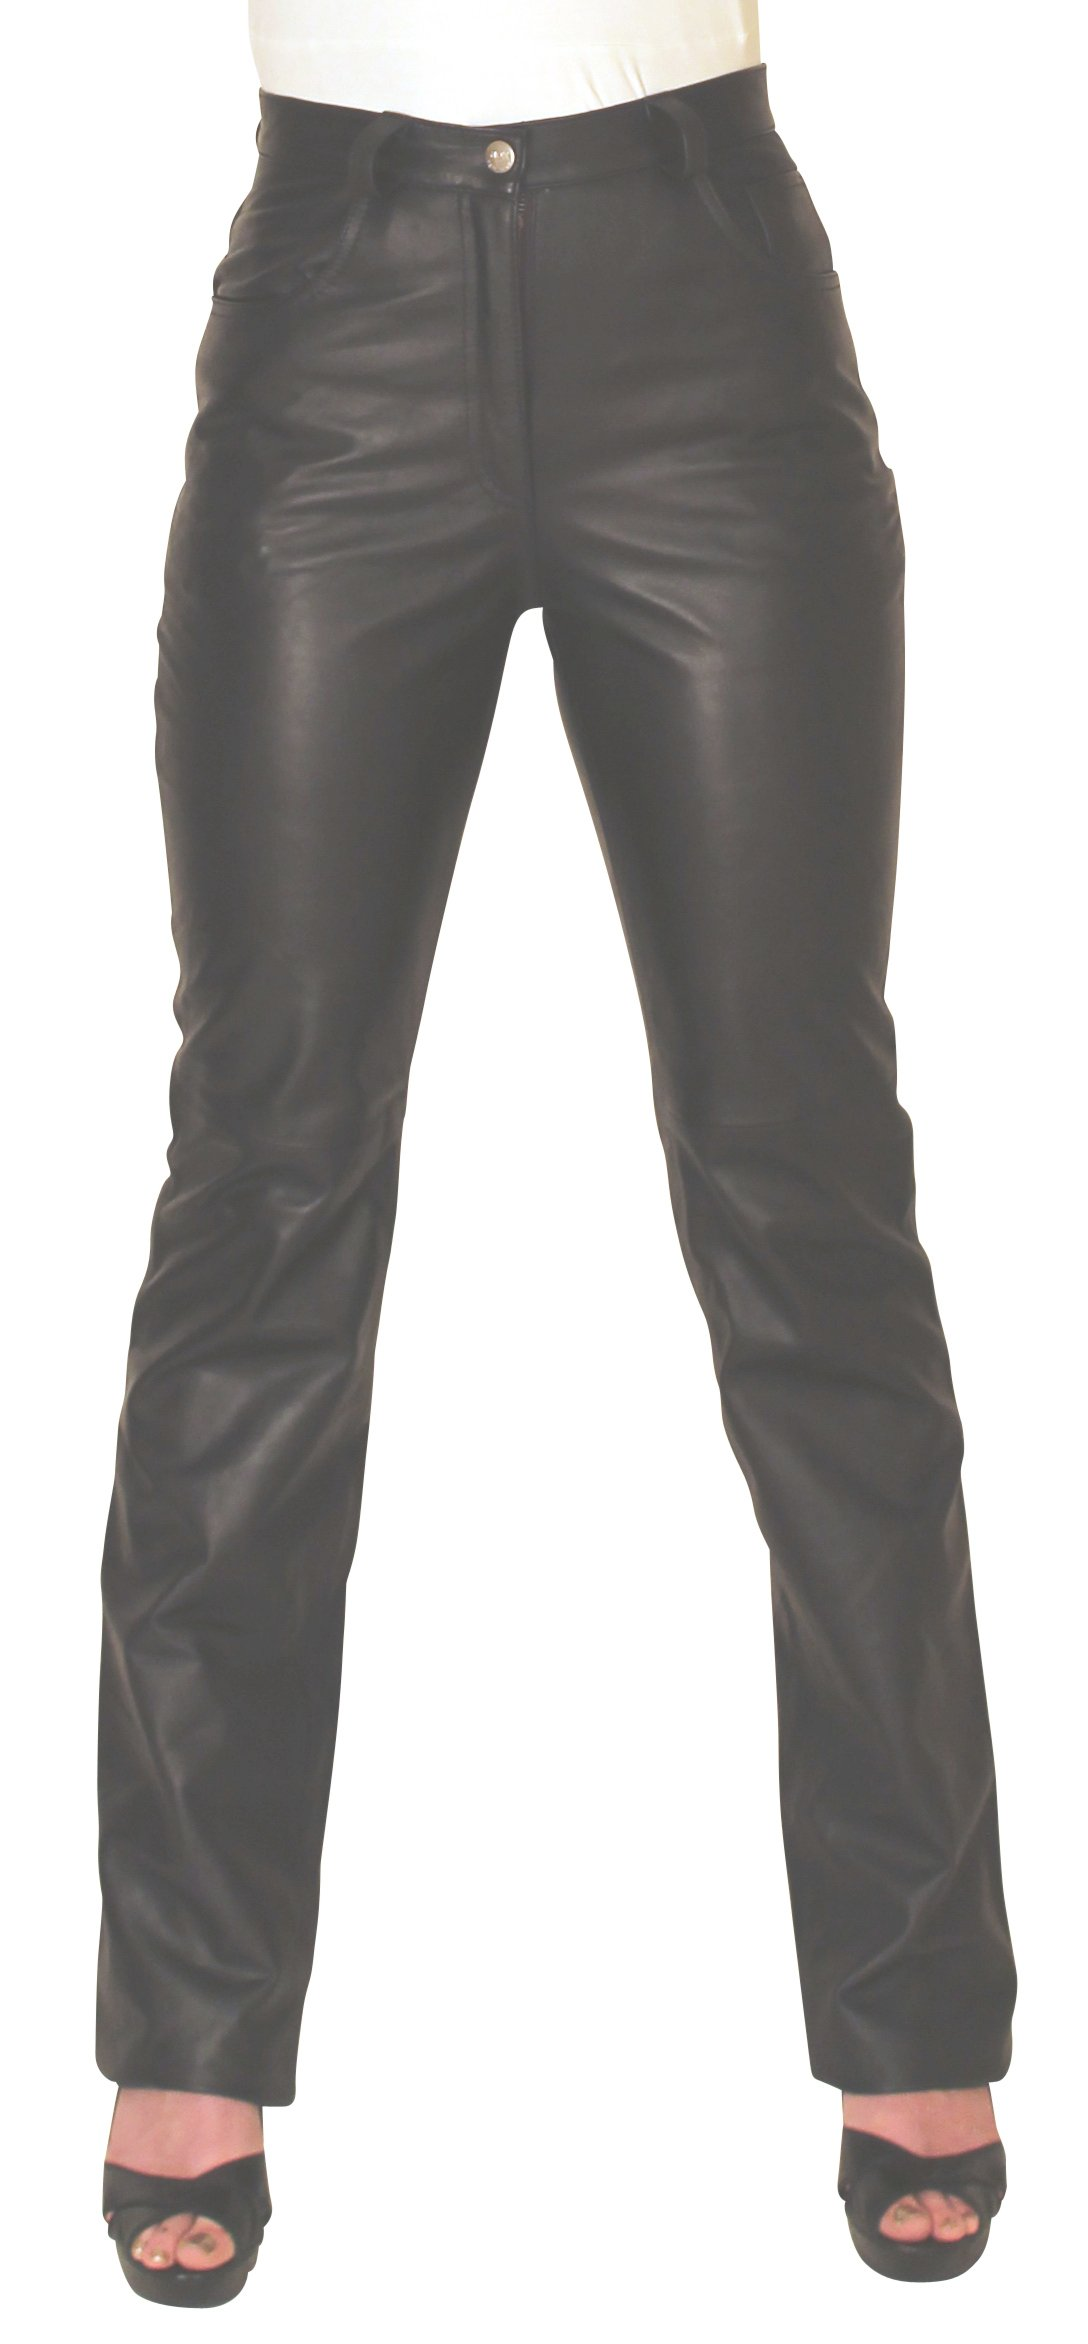 NDK New York Women's Lambskin Leather Pants Sexy Style Without Pockets by NDK New York